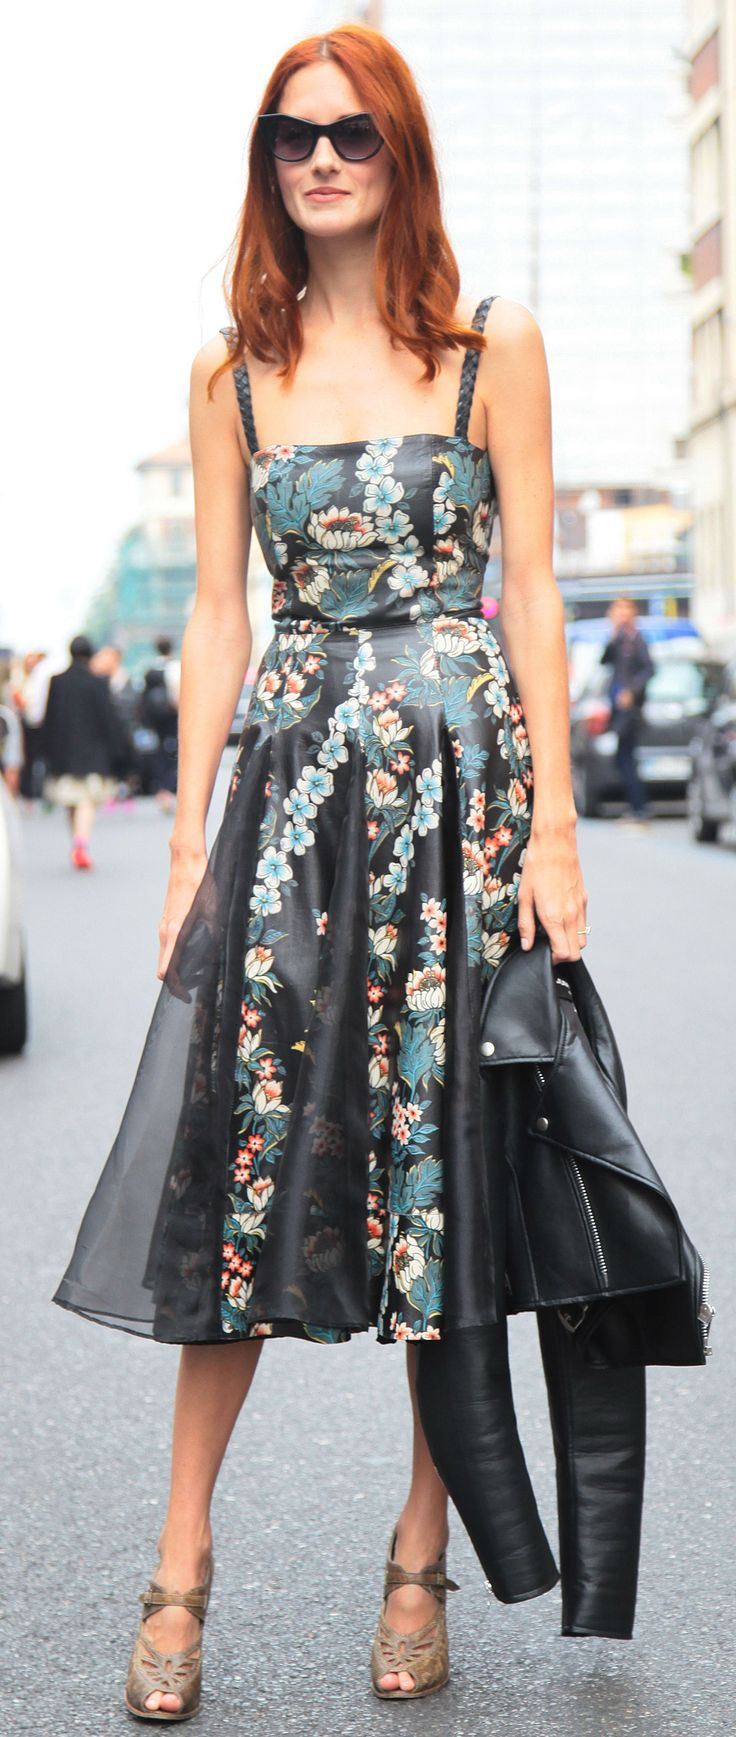 Your Street Style Field Guide From NYC to Paris #streetstyle #taylortomasihill